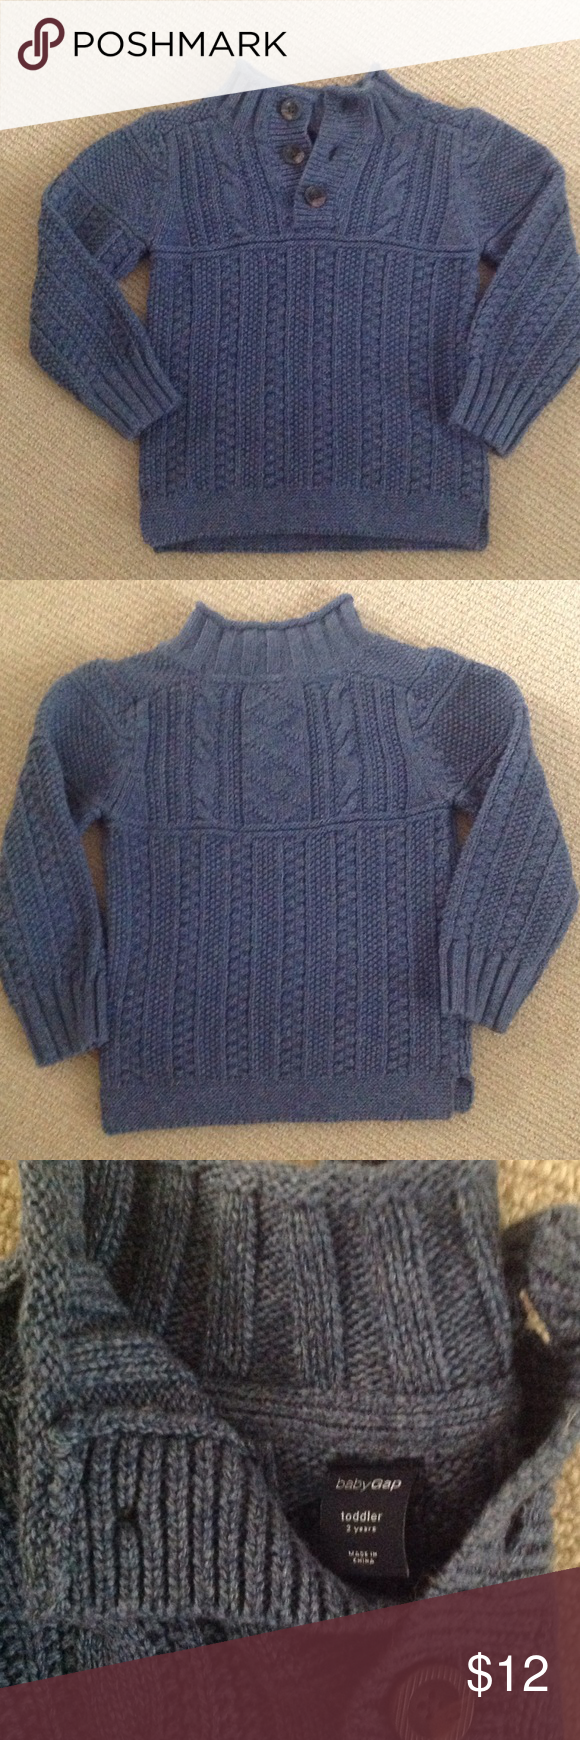 51b7cafe2 Baby Gap Boys Blue Cable Knit Sweater Size 2T